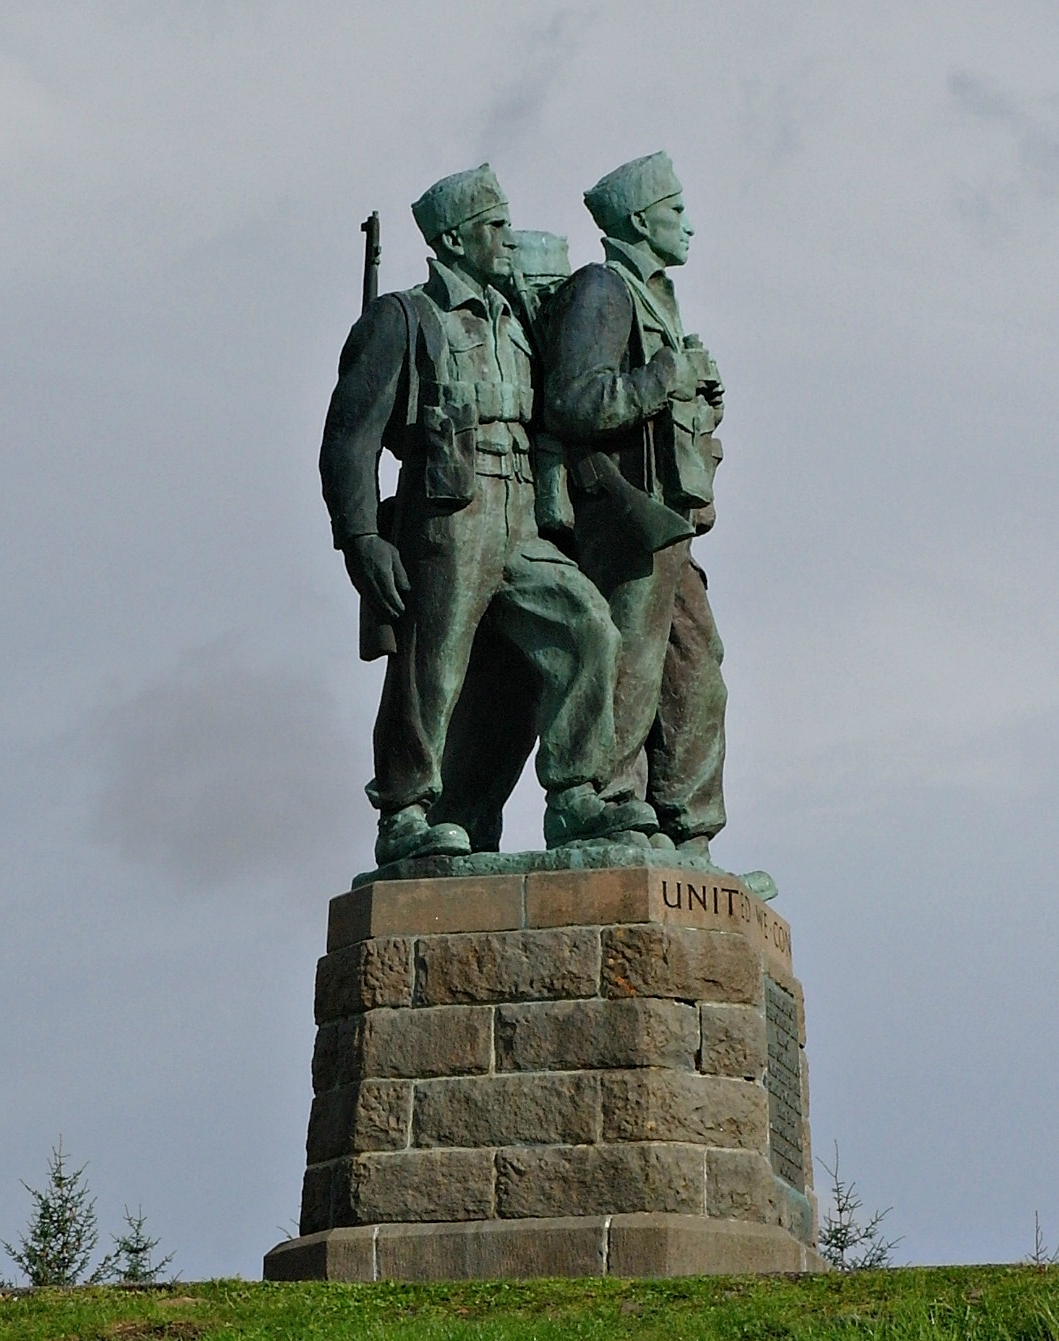 The dignity and sheer presence of the three figures of the Commando Memorial make quite an impression on visitors.